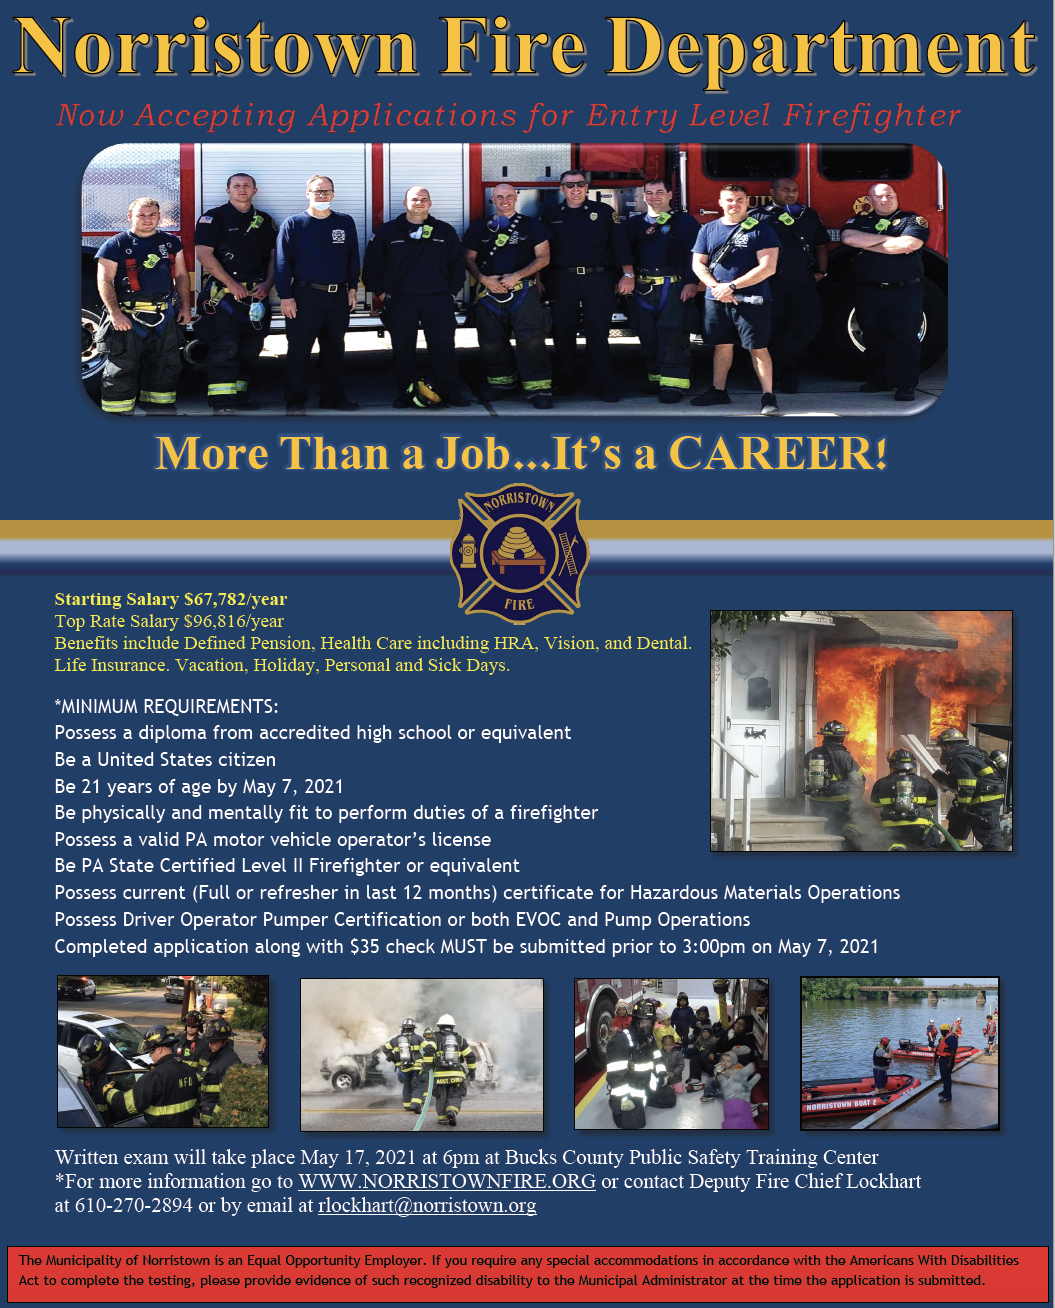 NFD Recruitment Flyer